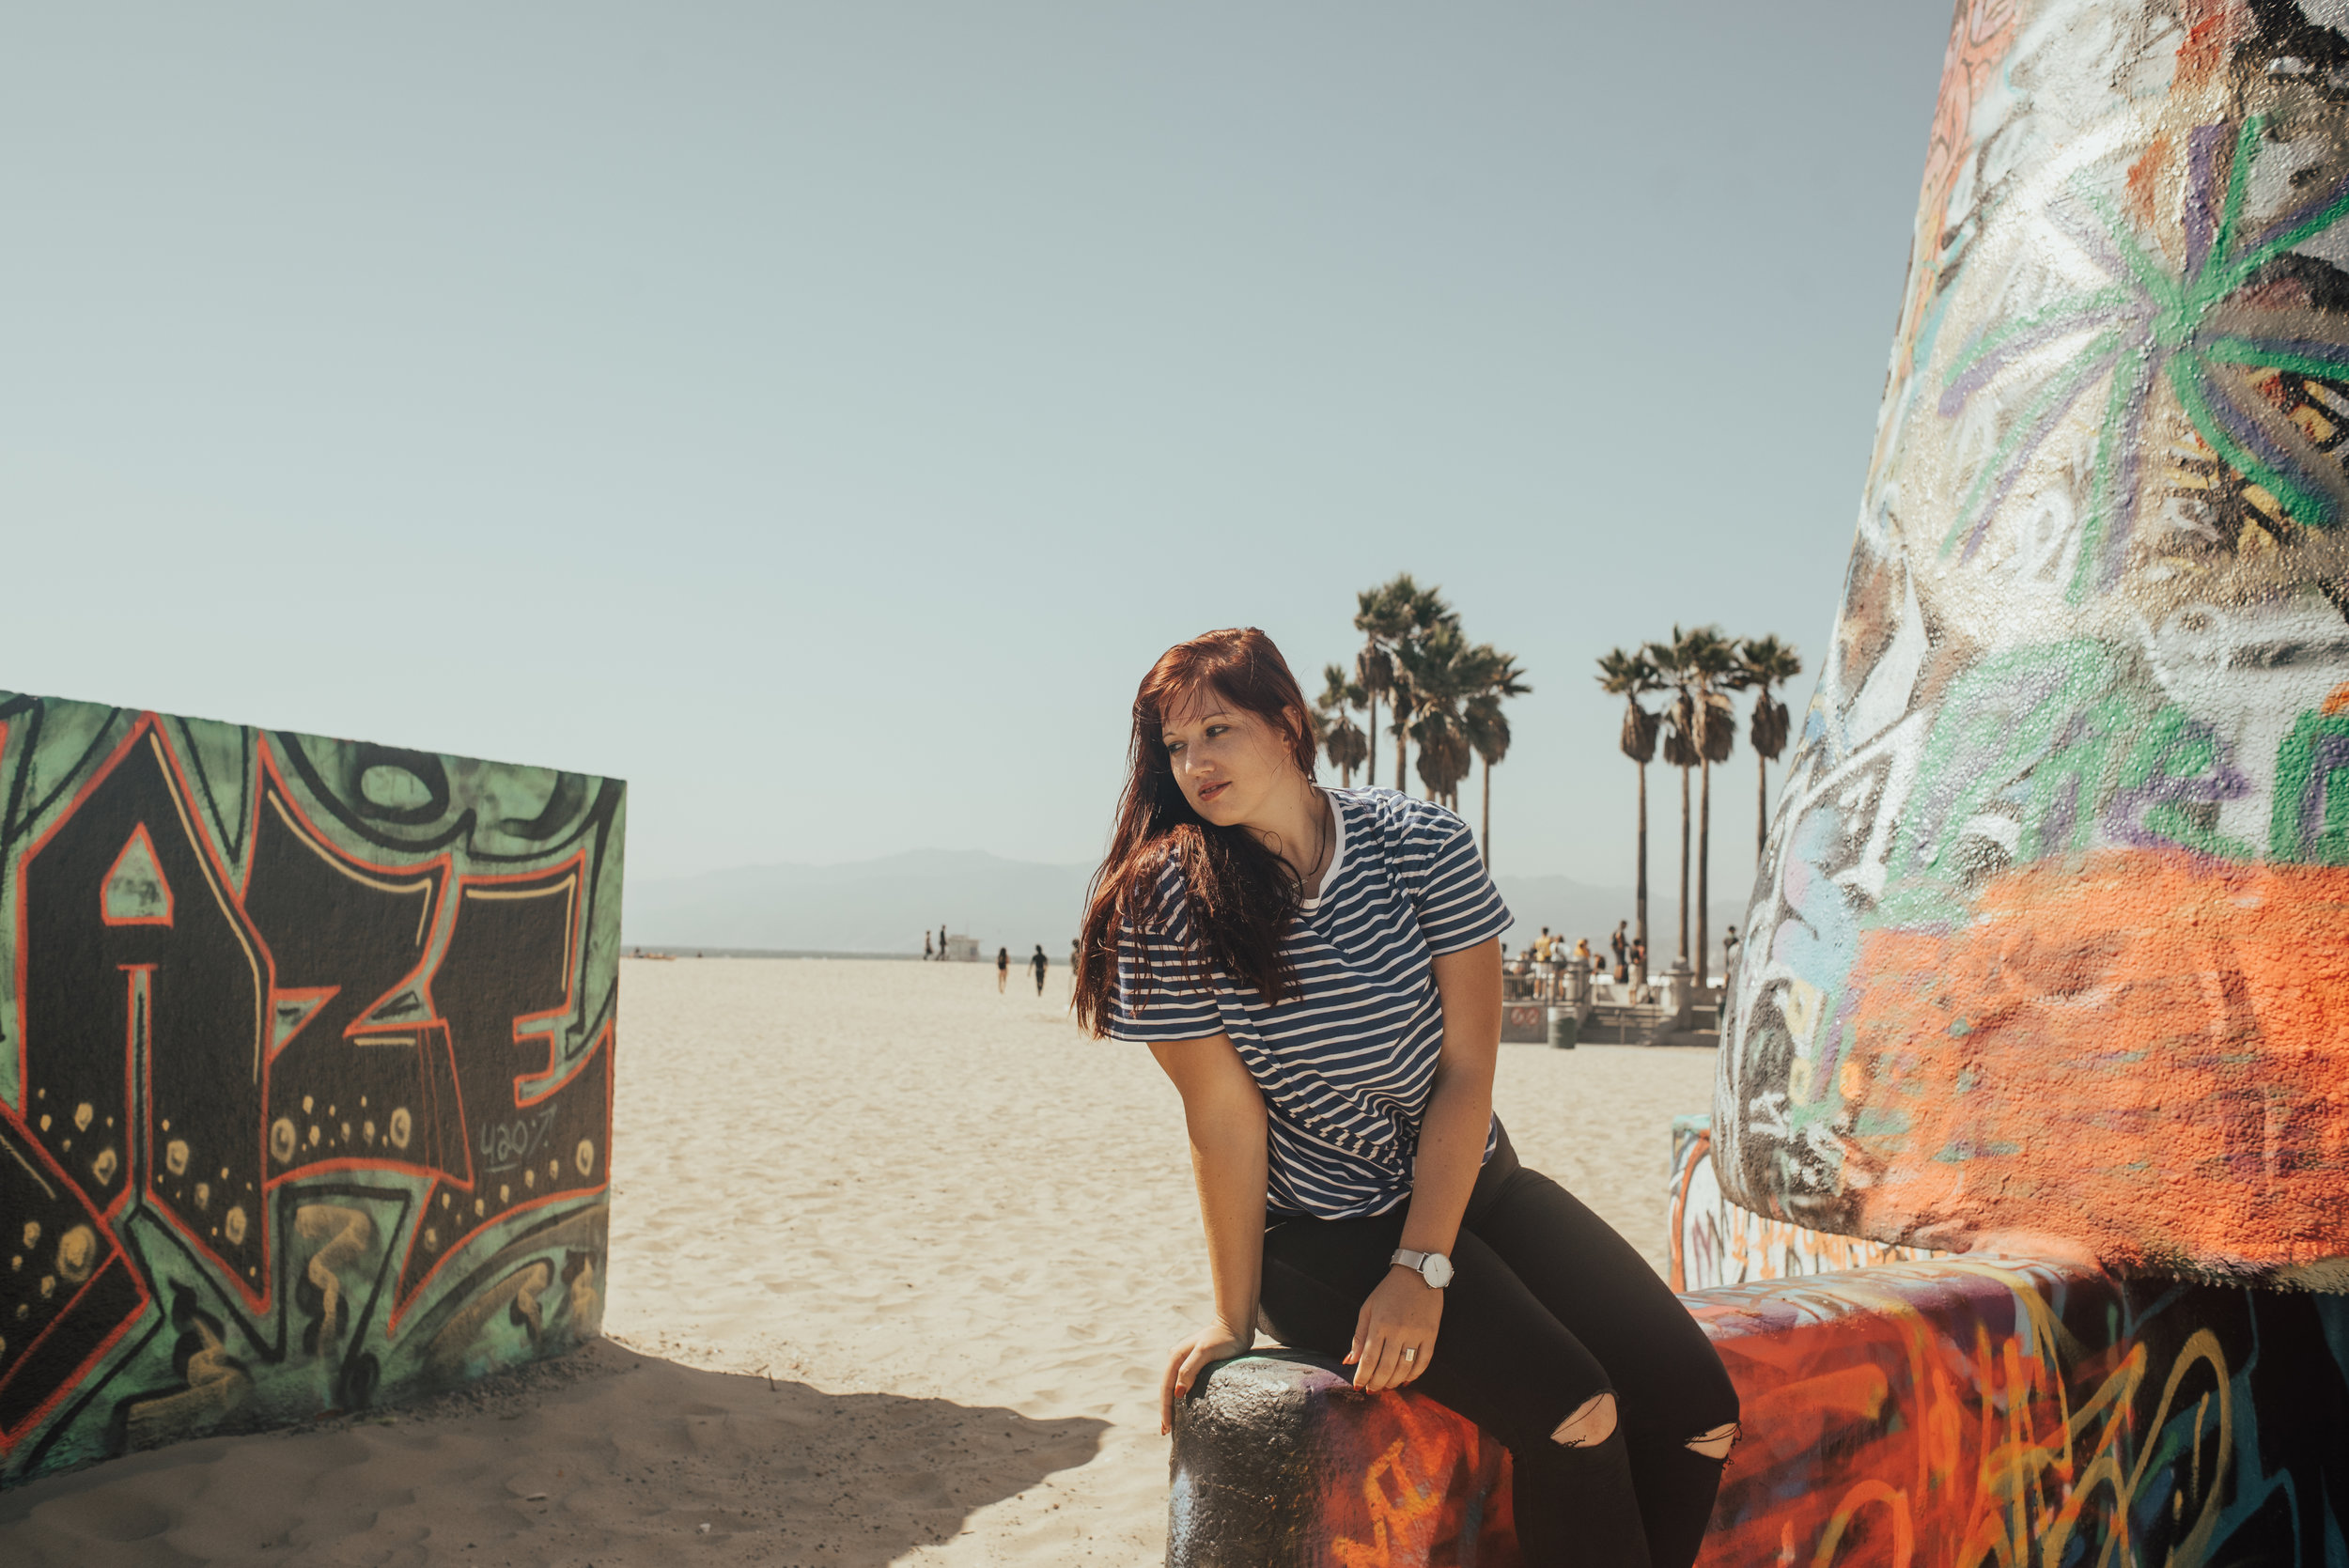 Venice Beach By SB Photographs